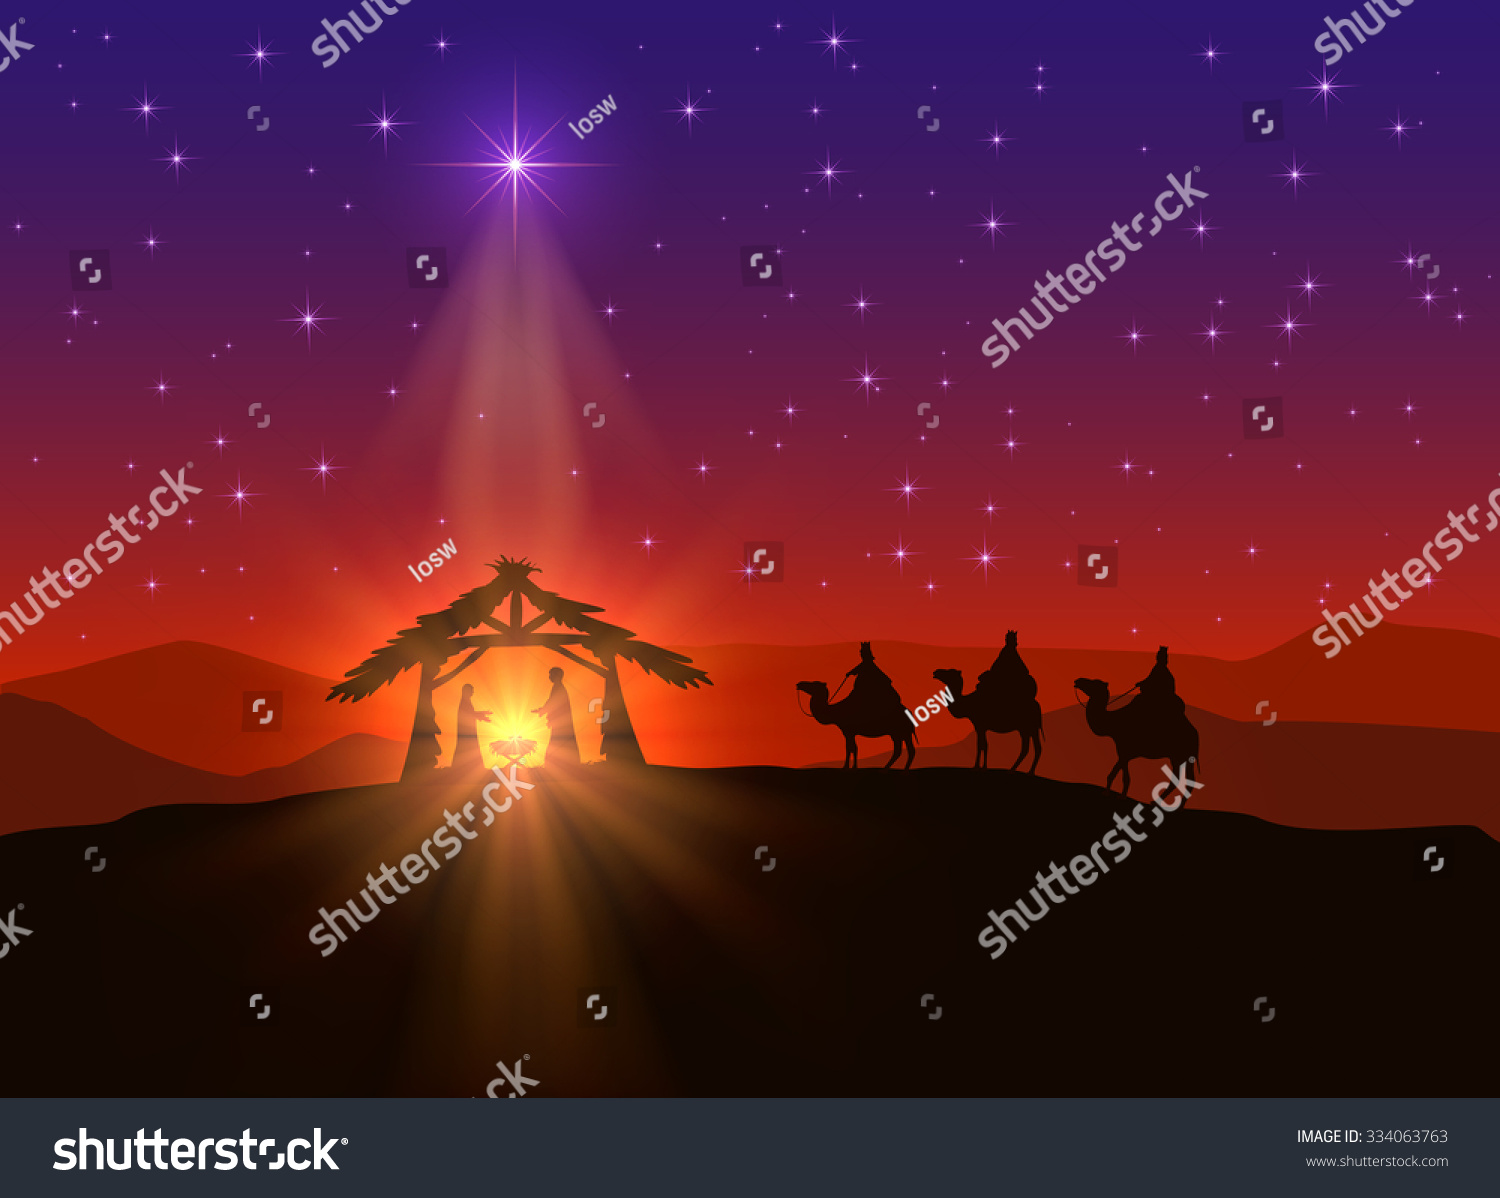 Christian Background With Christmas Star And Birth Of ...